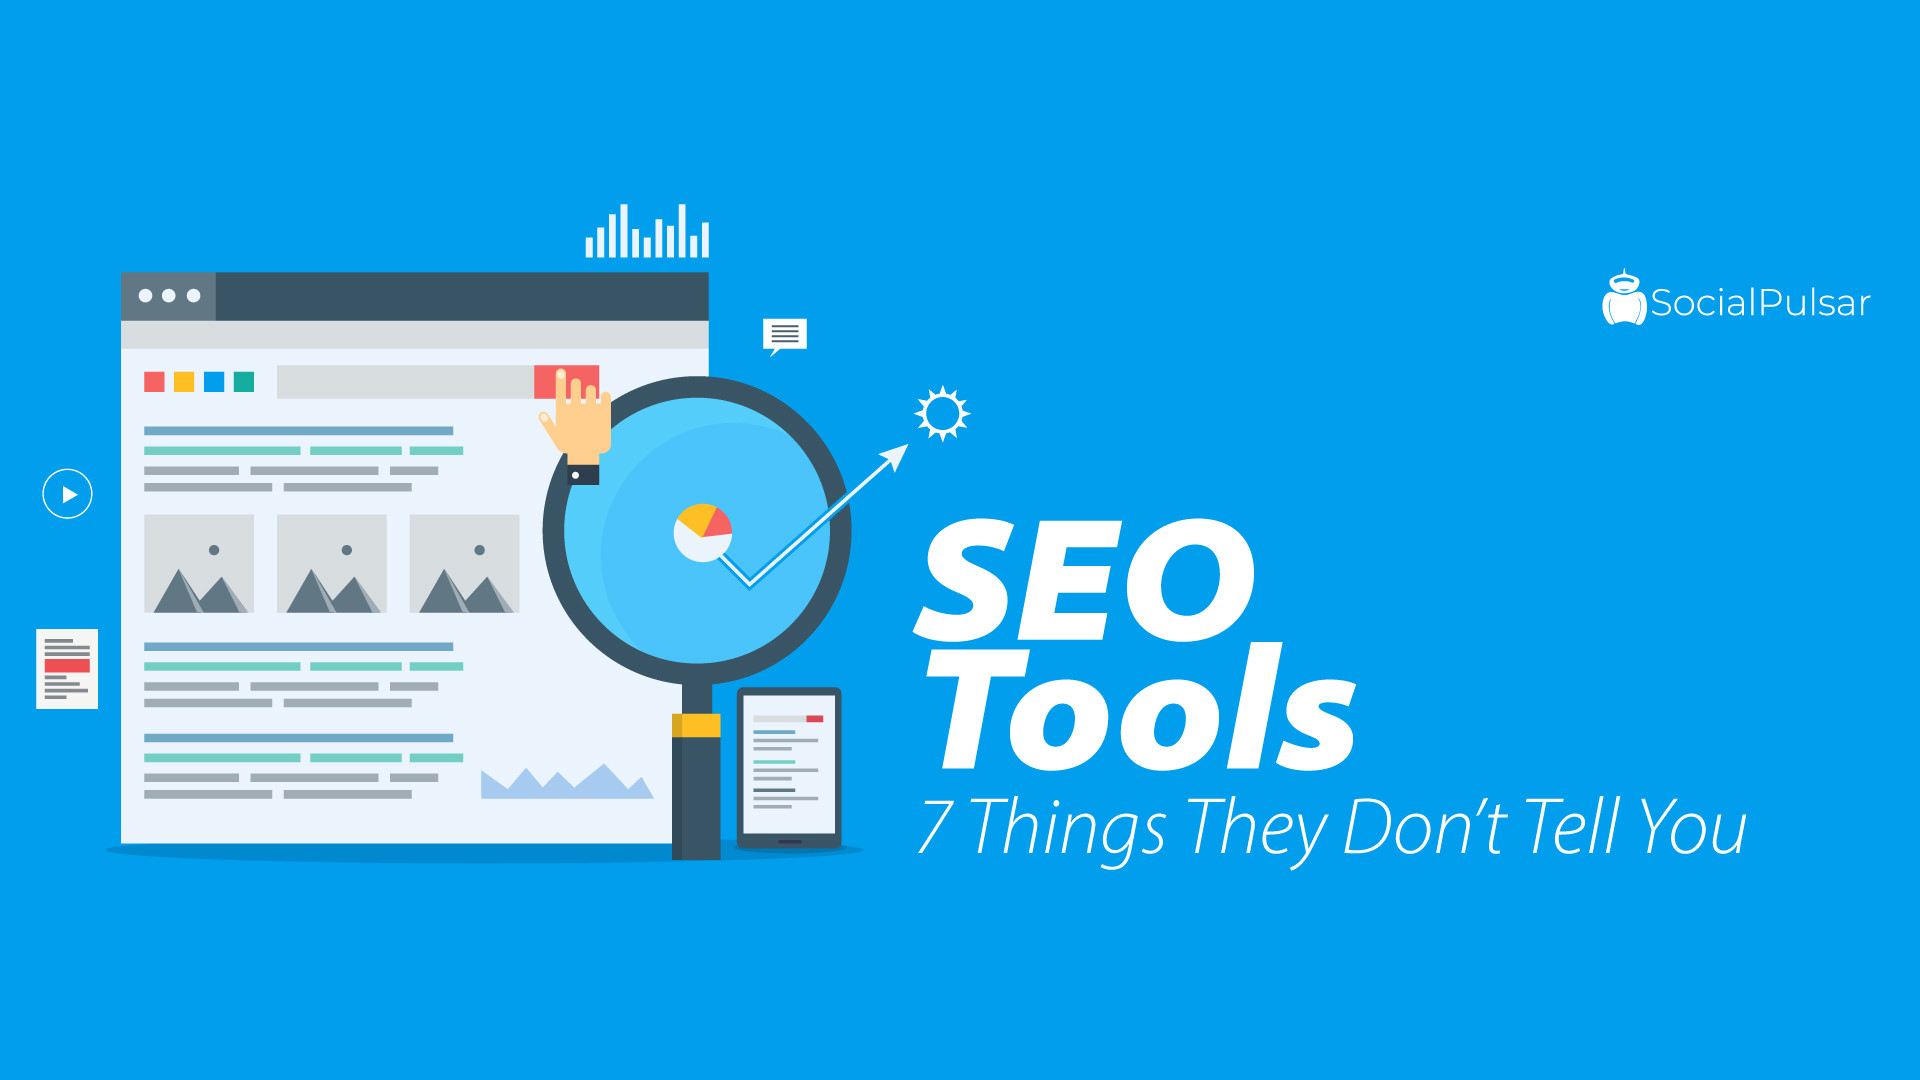 SEO Tools – 7 Things They Don't Tell You